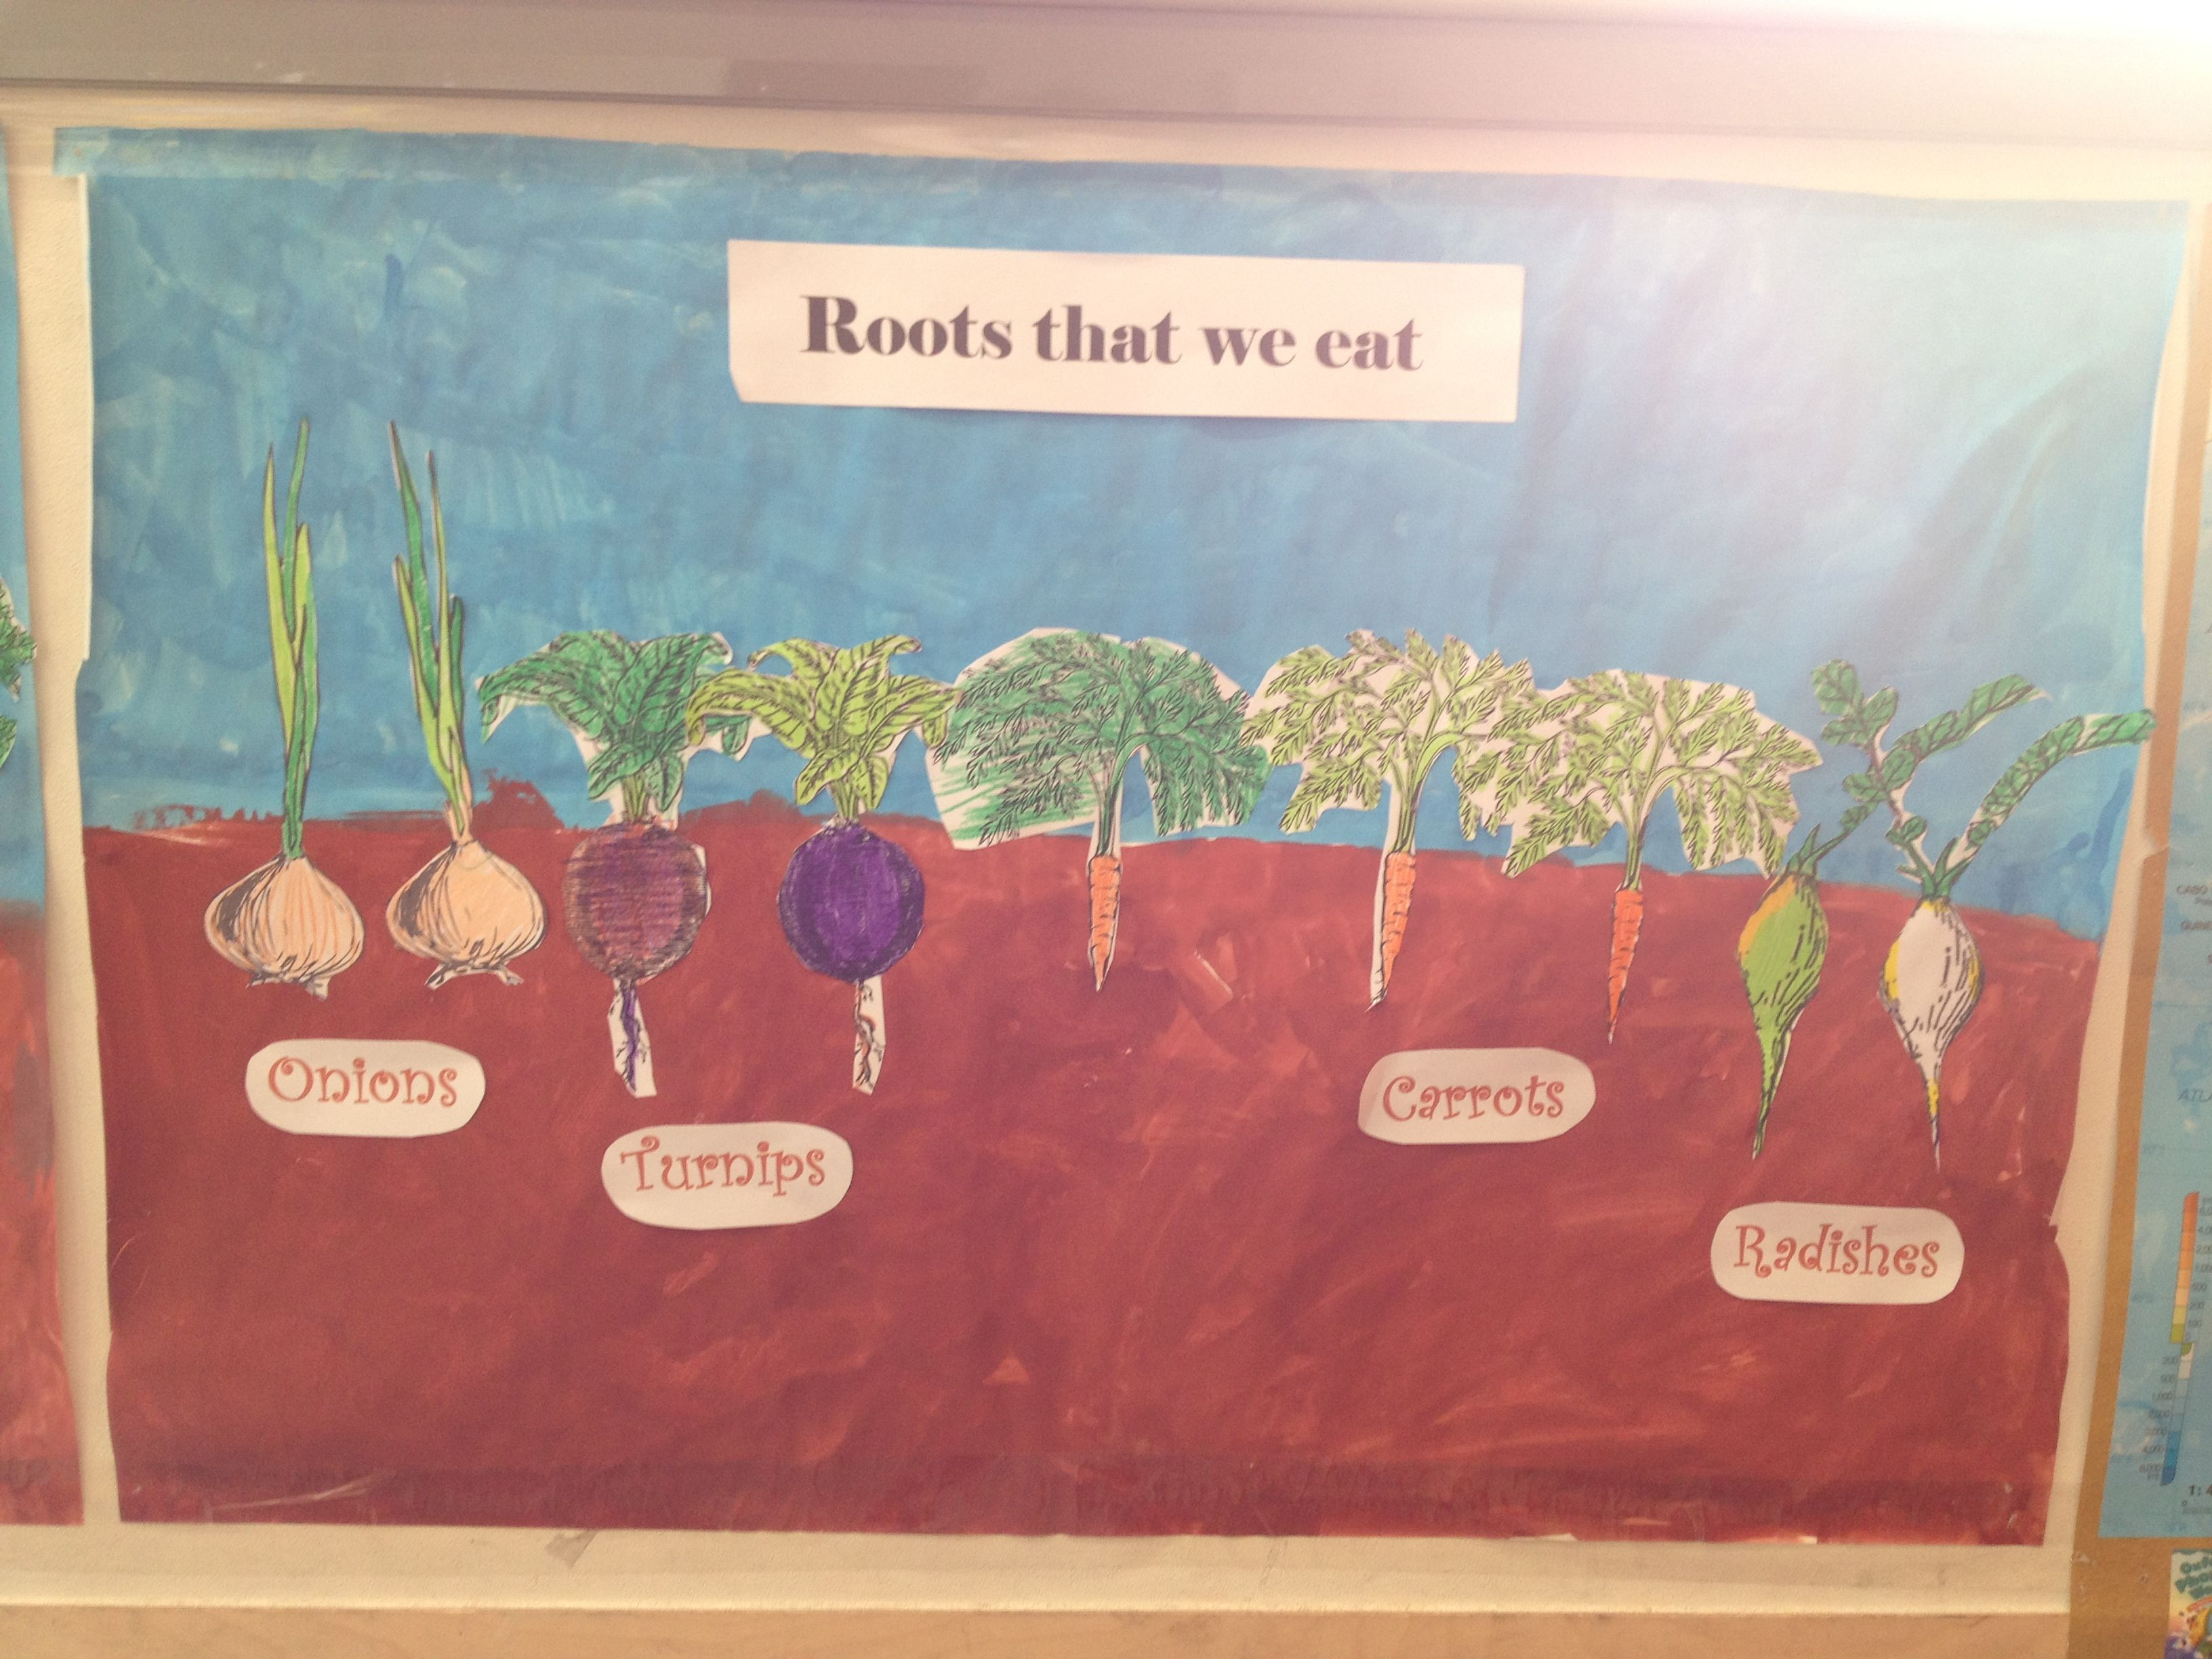 We Made Posters To Show The Parts Of A Plant We Can Eat